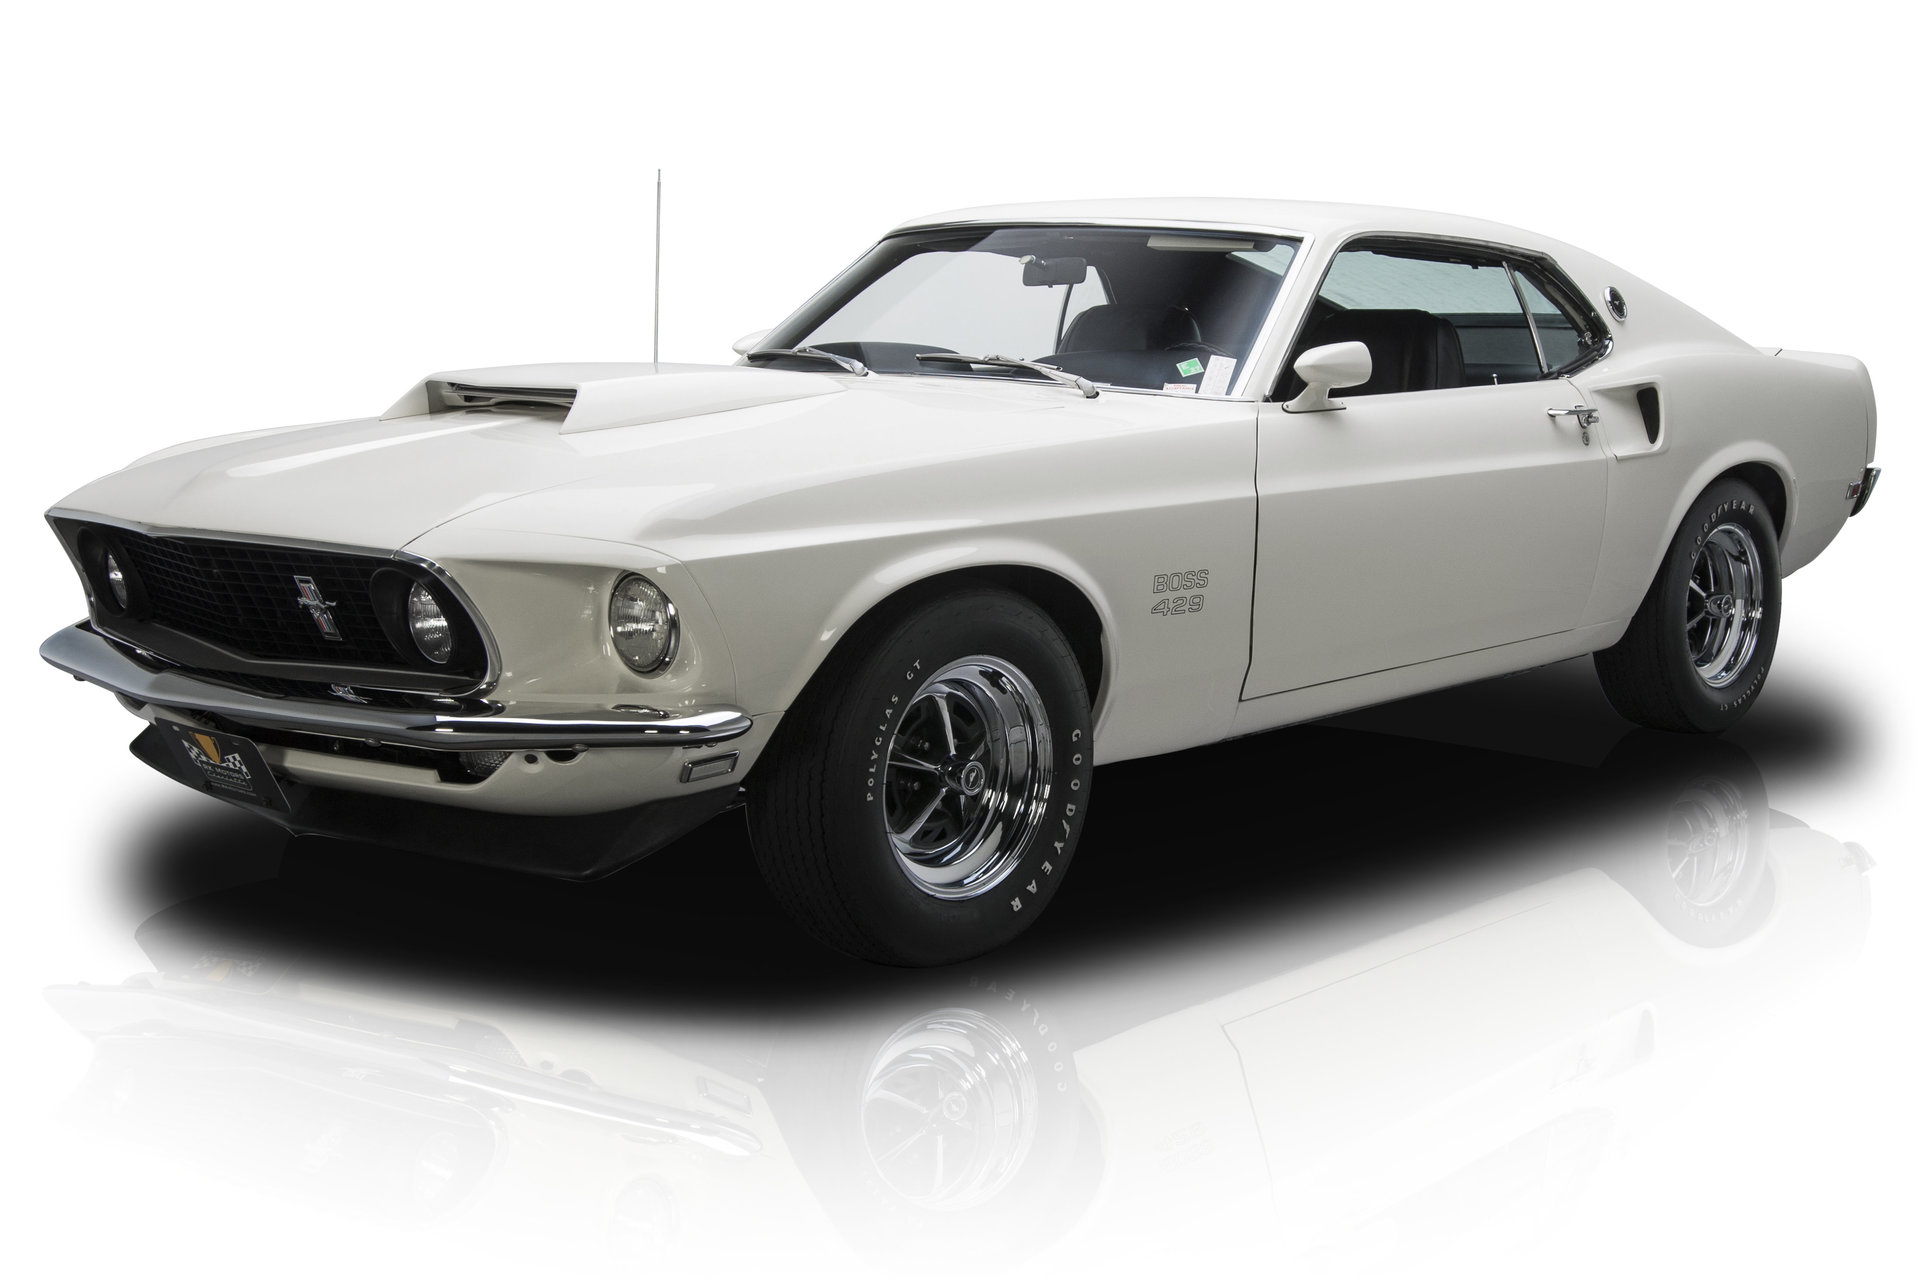 40009173562b86_hd_1969-ford-mustang-boss-429